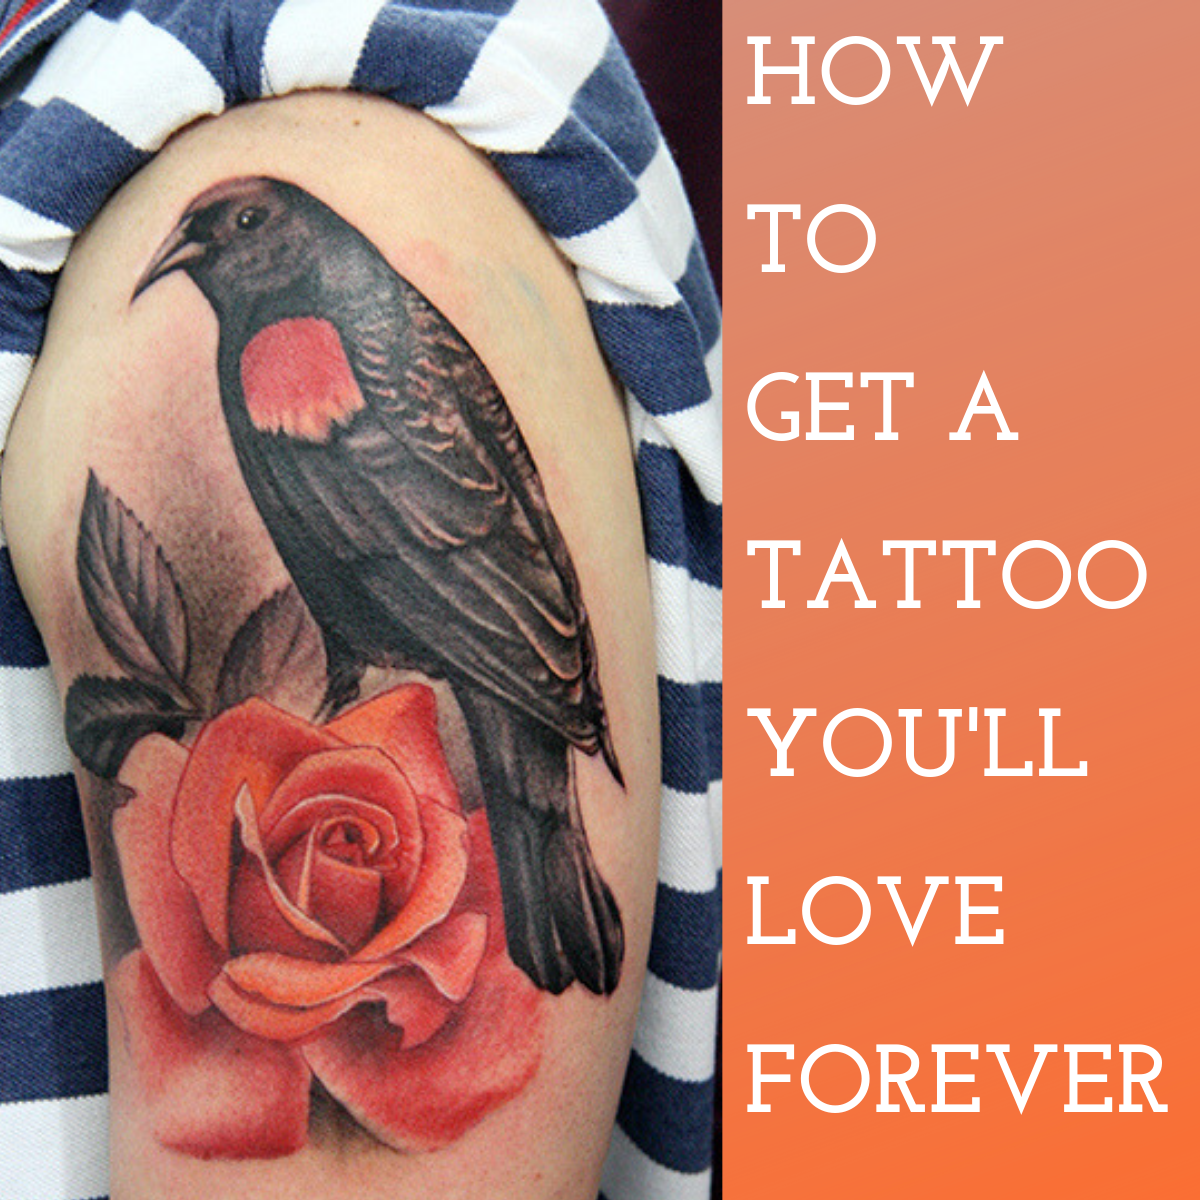 83a434b9e A Tattoo Artist's Tips for Getting a Tattoo You'll Love Forever ...